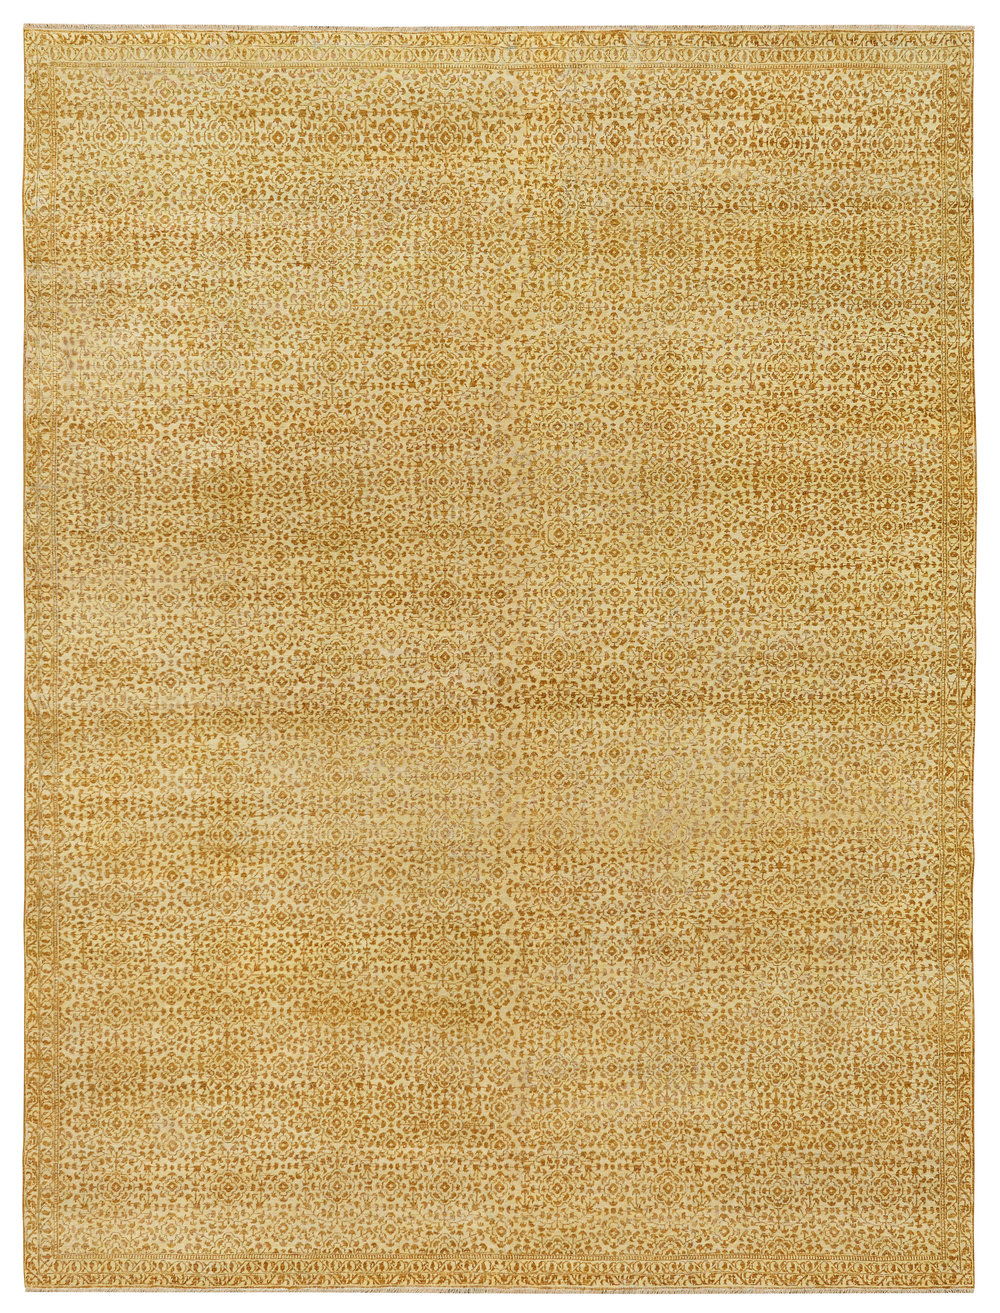 Nile Ivory-Gold, Indian, 9' x 11' 9